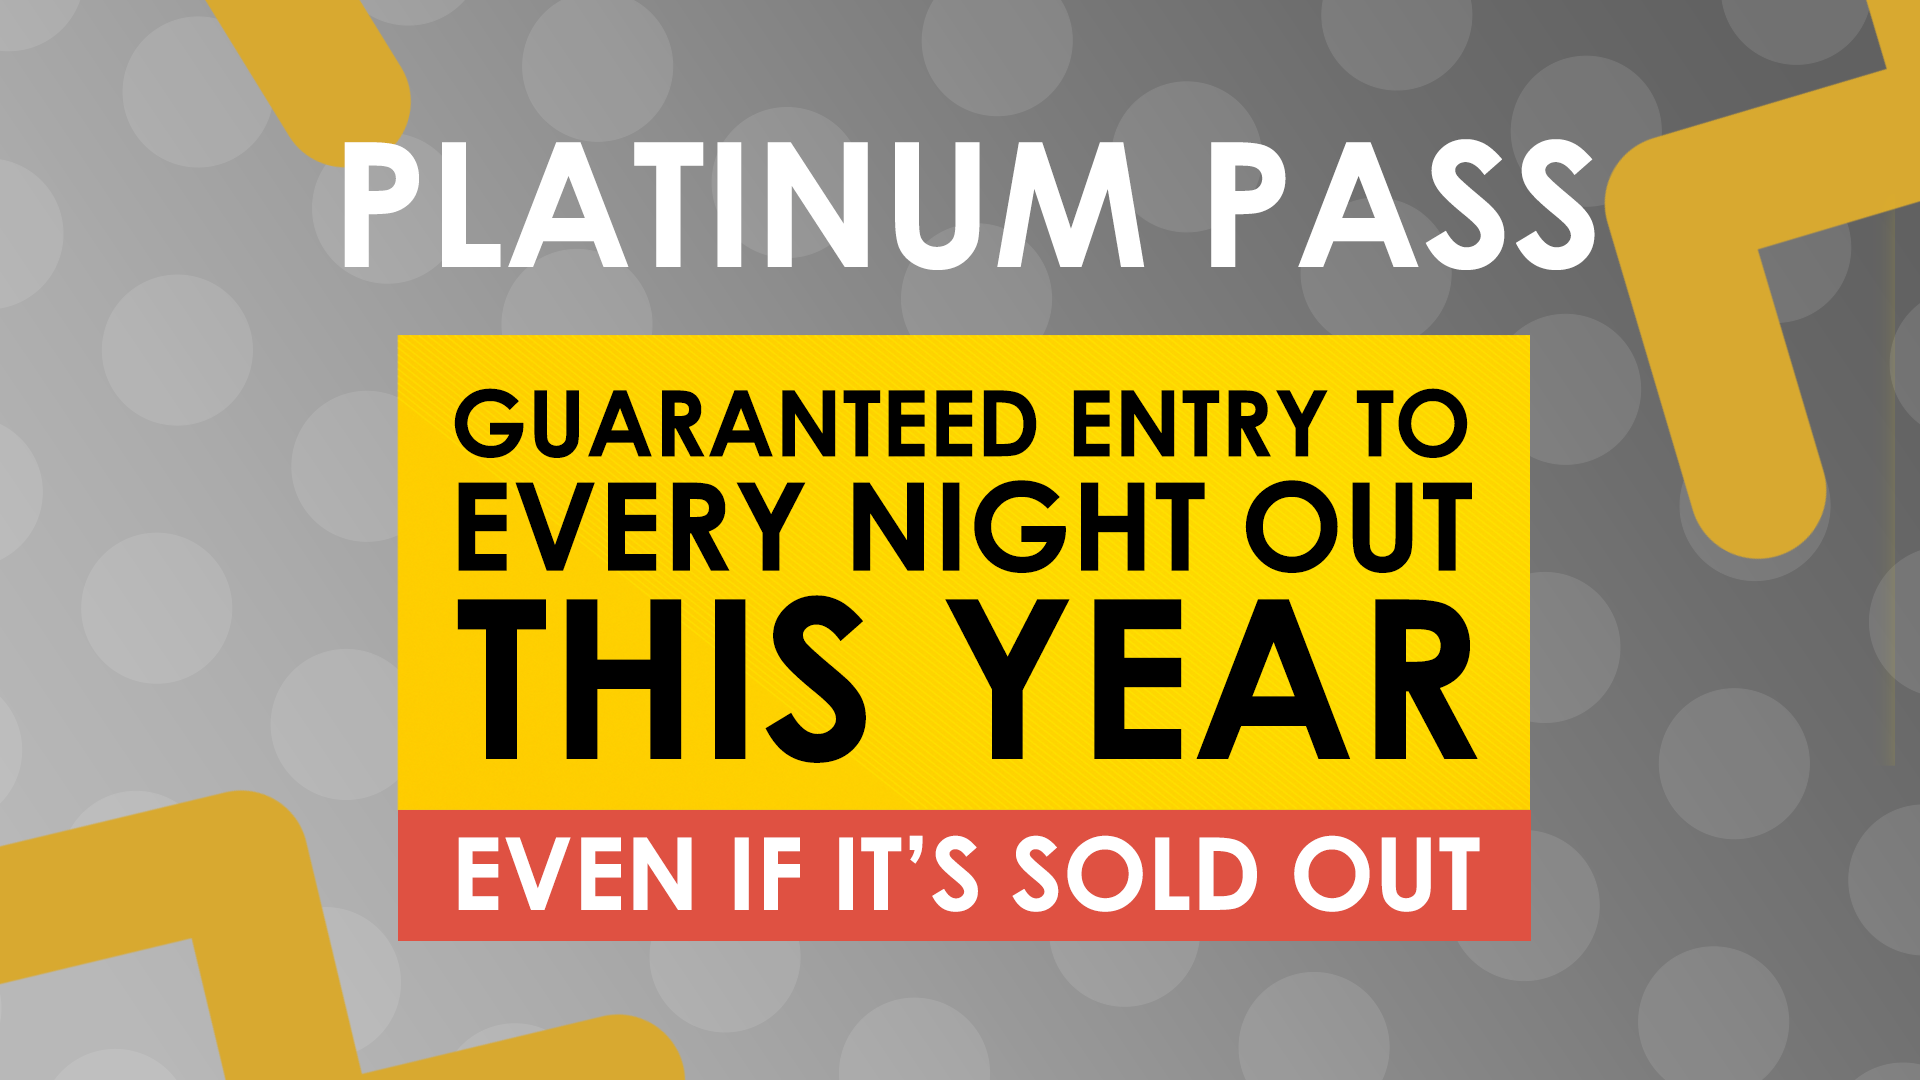 Grab a Platinum Pass - LIMITED NUMBER REMAINING